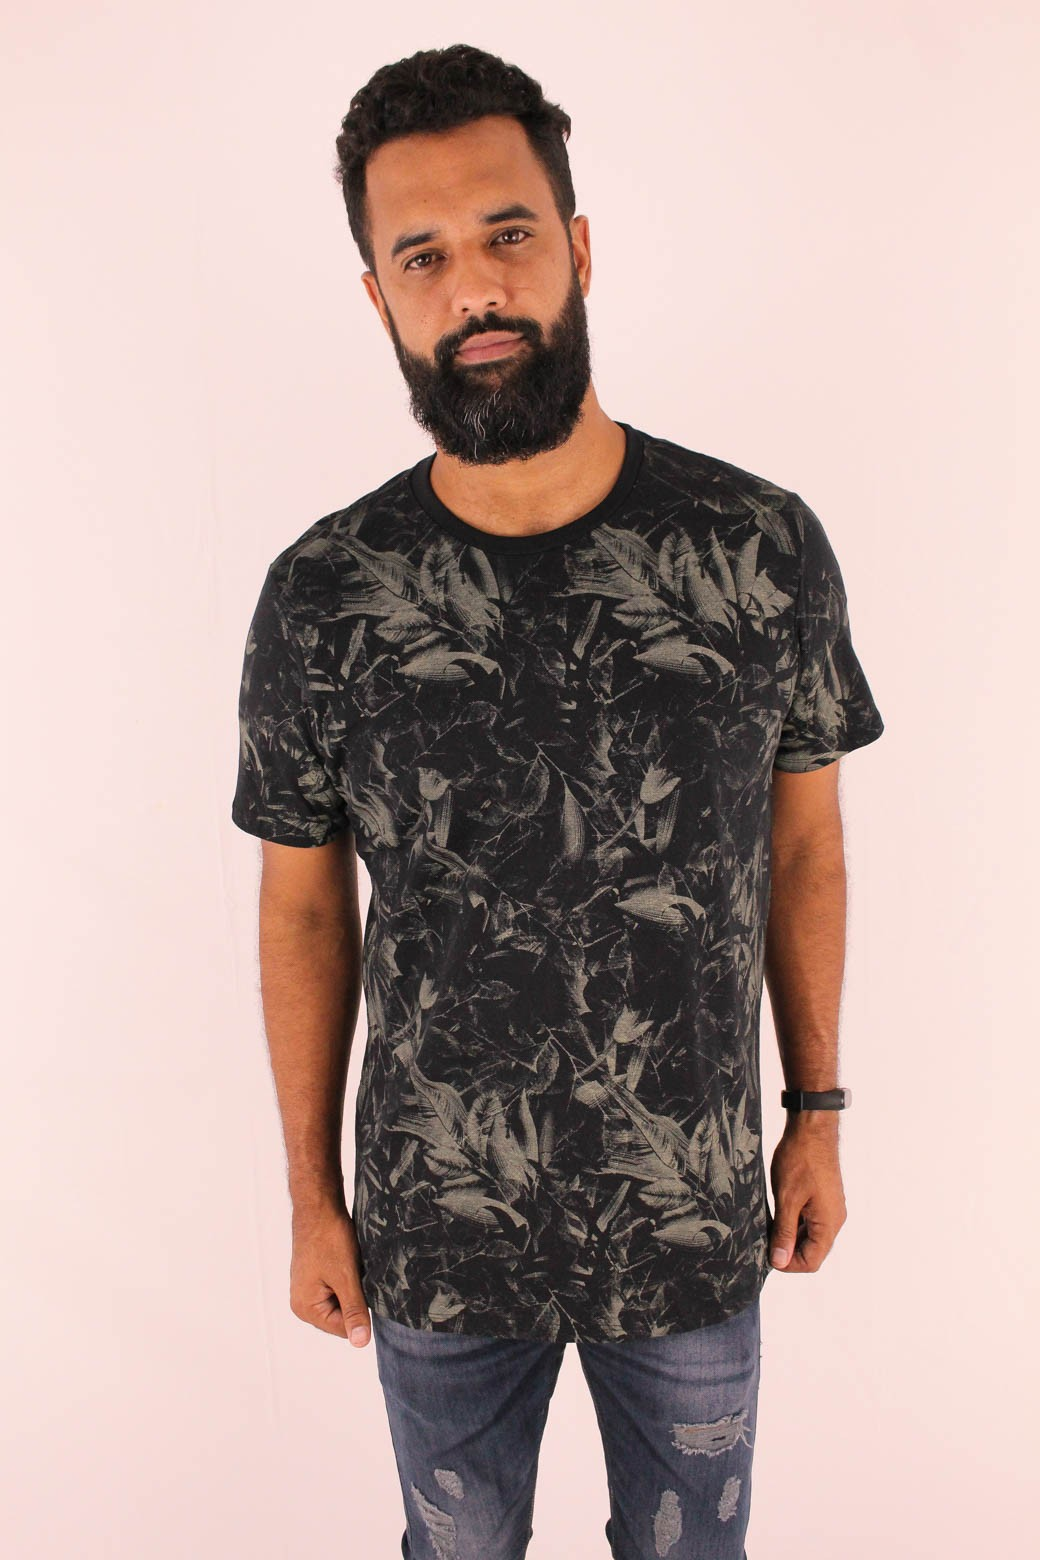 CAMISETA ESTAMPADA ALL FREE FULL PRINT DARK FLOWERS